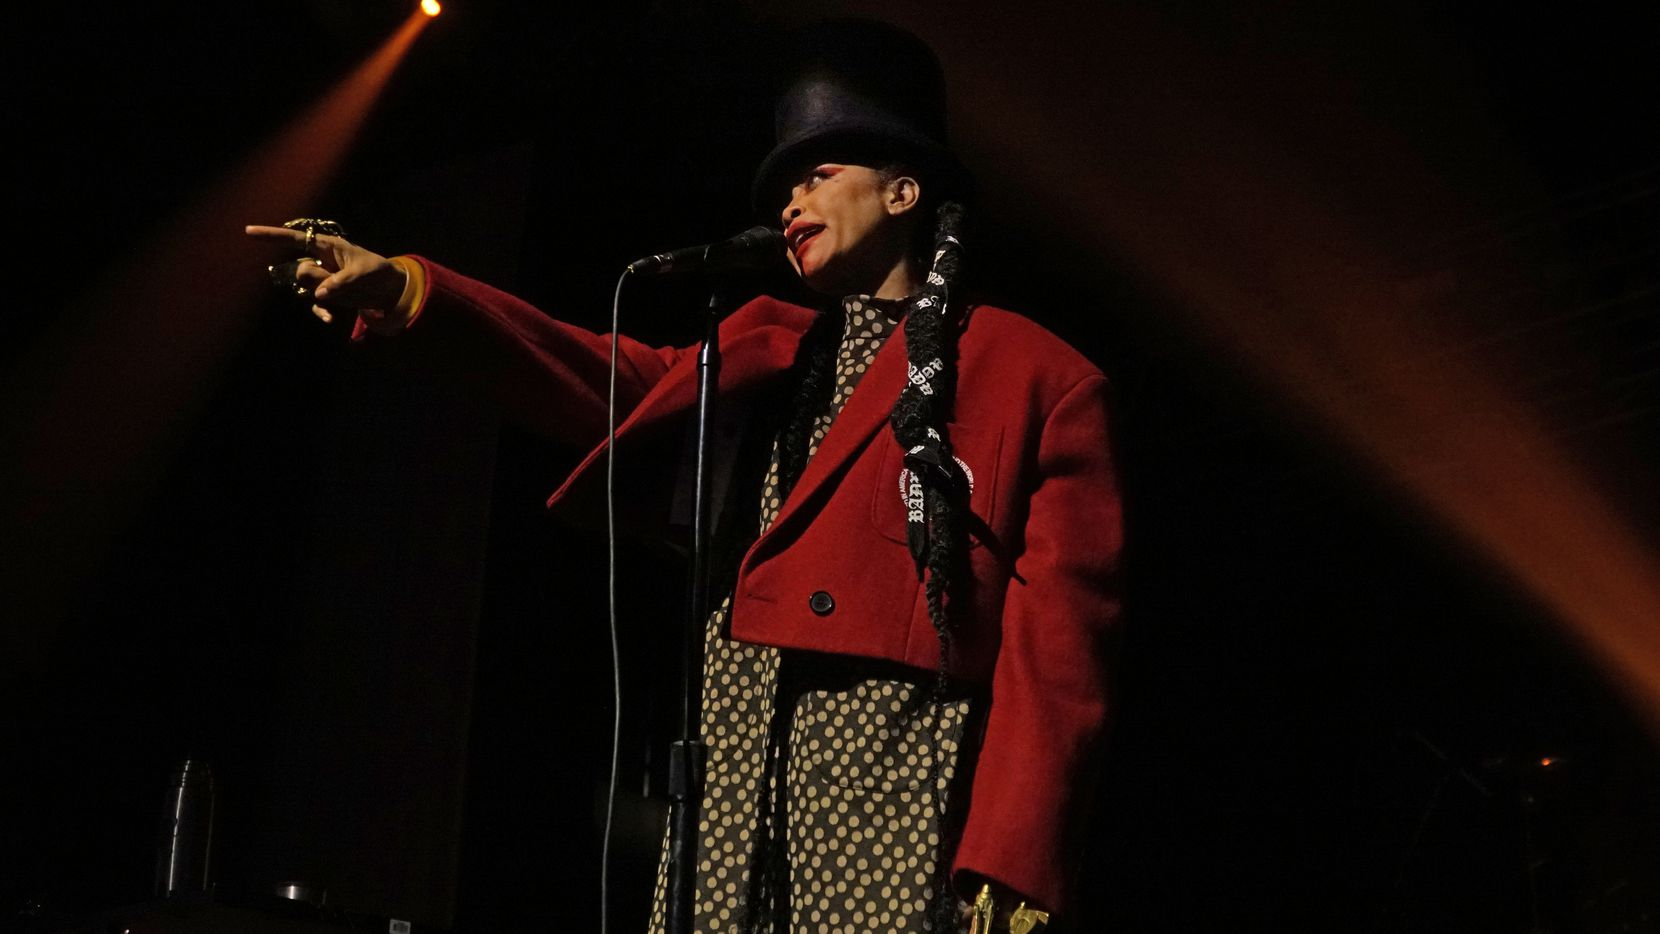 Erykah Badu performs at The Bomb Factory in Dallas, Texas on Saturday, Feb. 22, 2020.